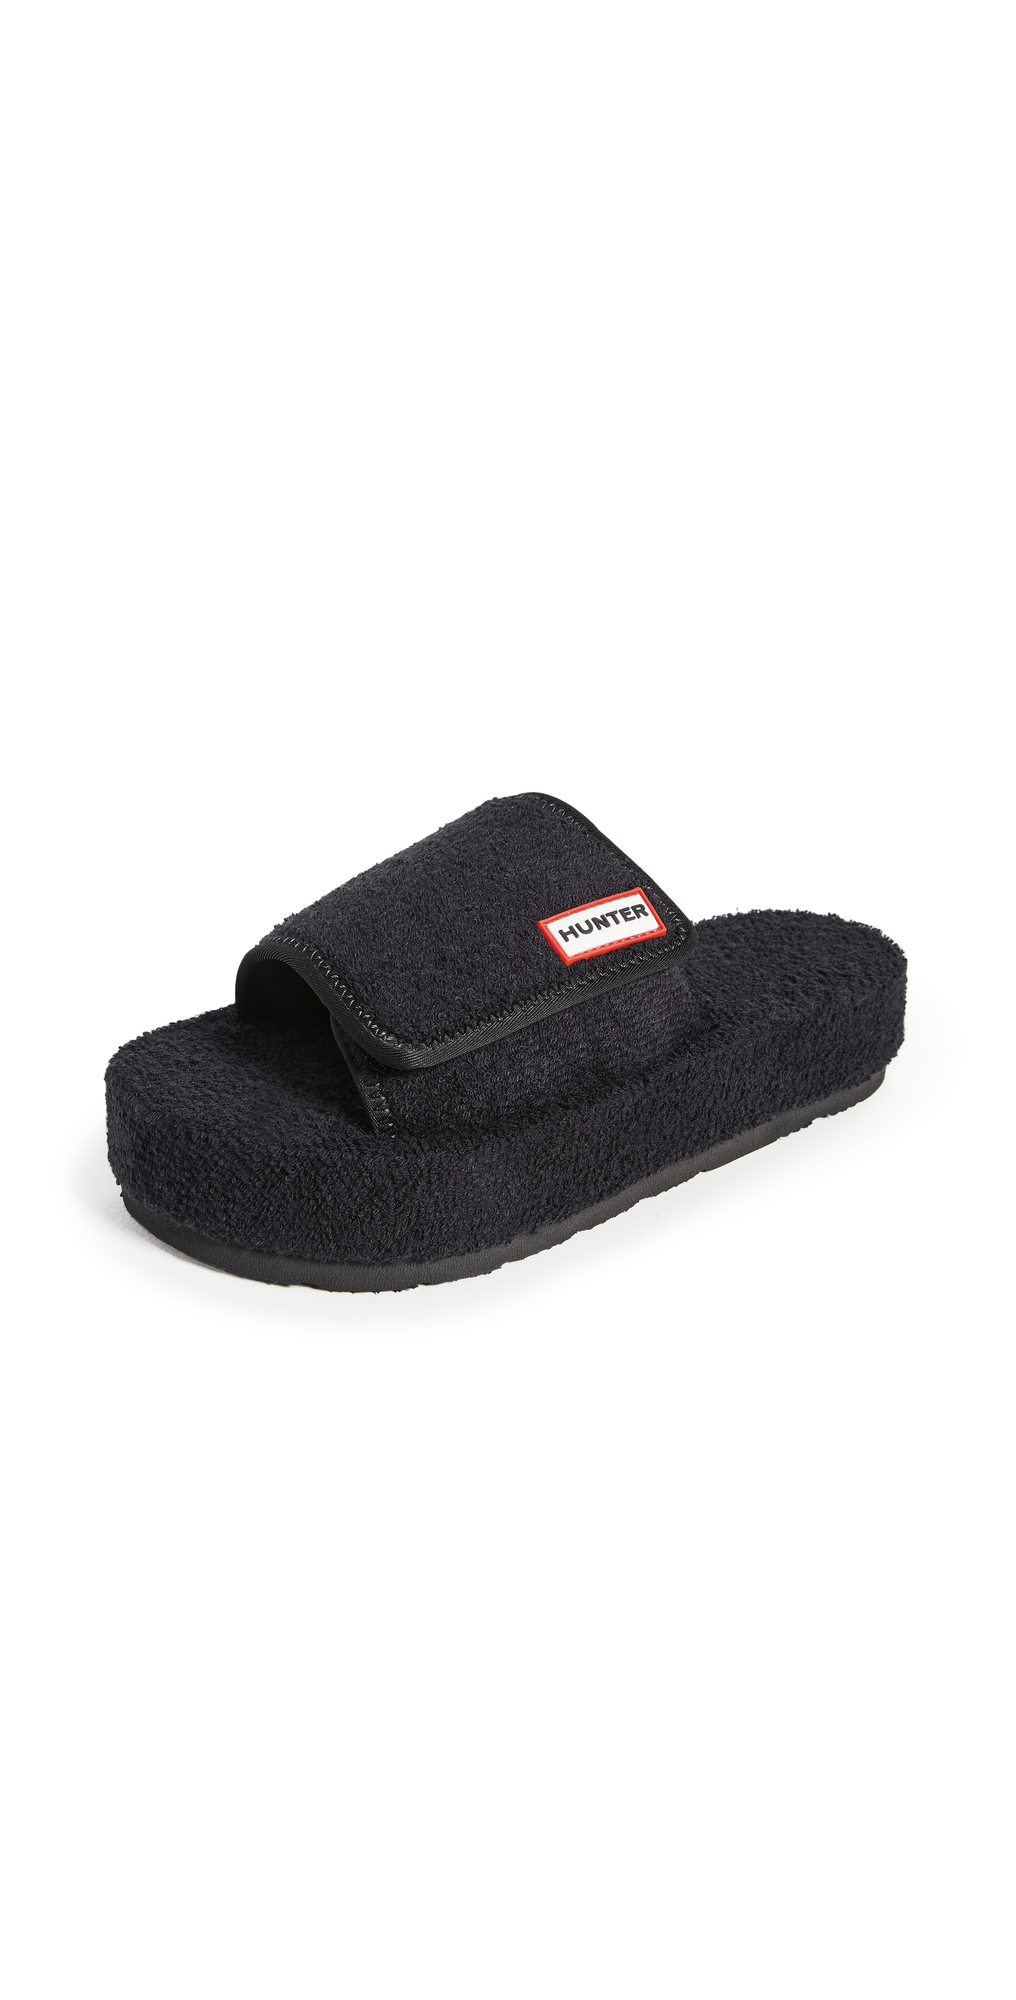 Hunter Boots Terry Toweling Beach Slides